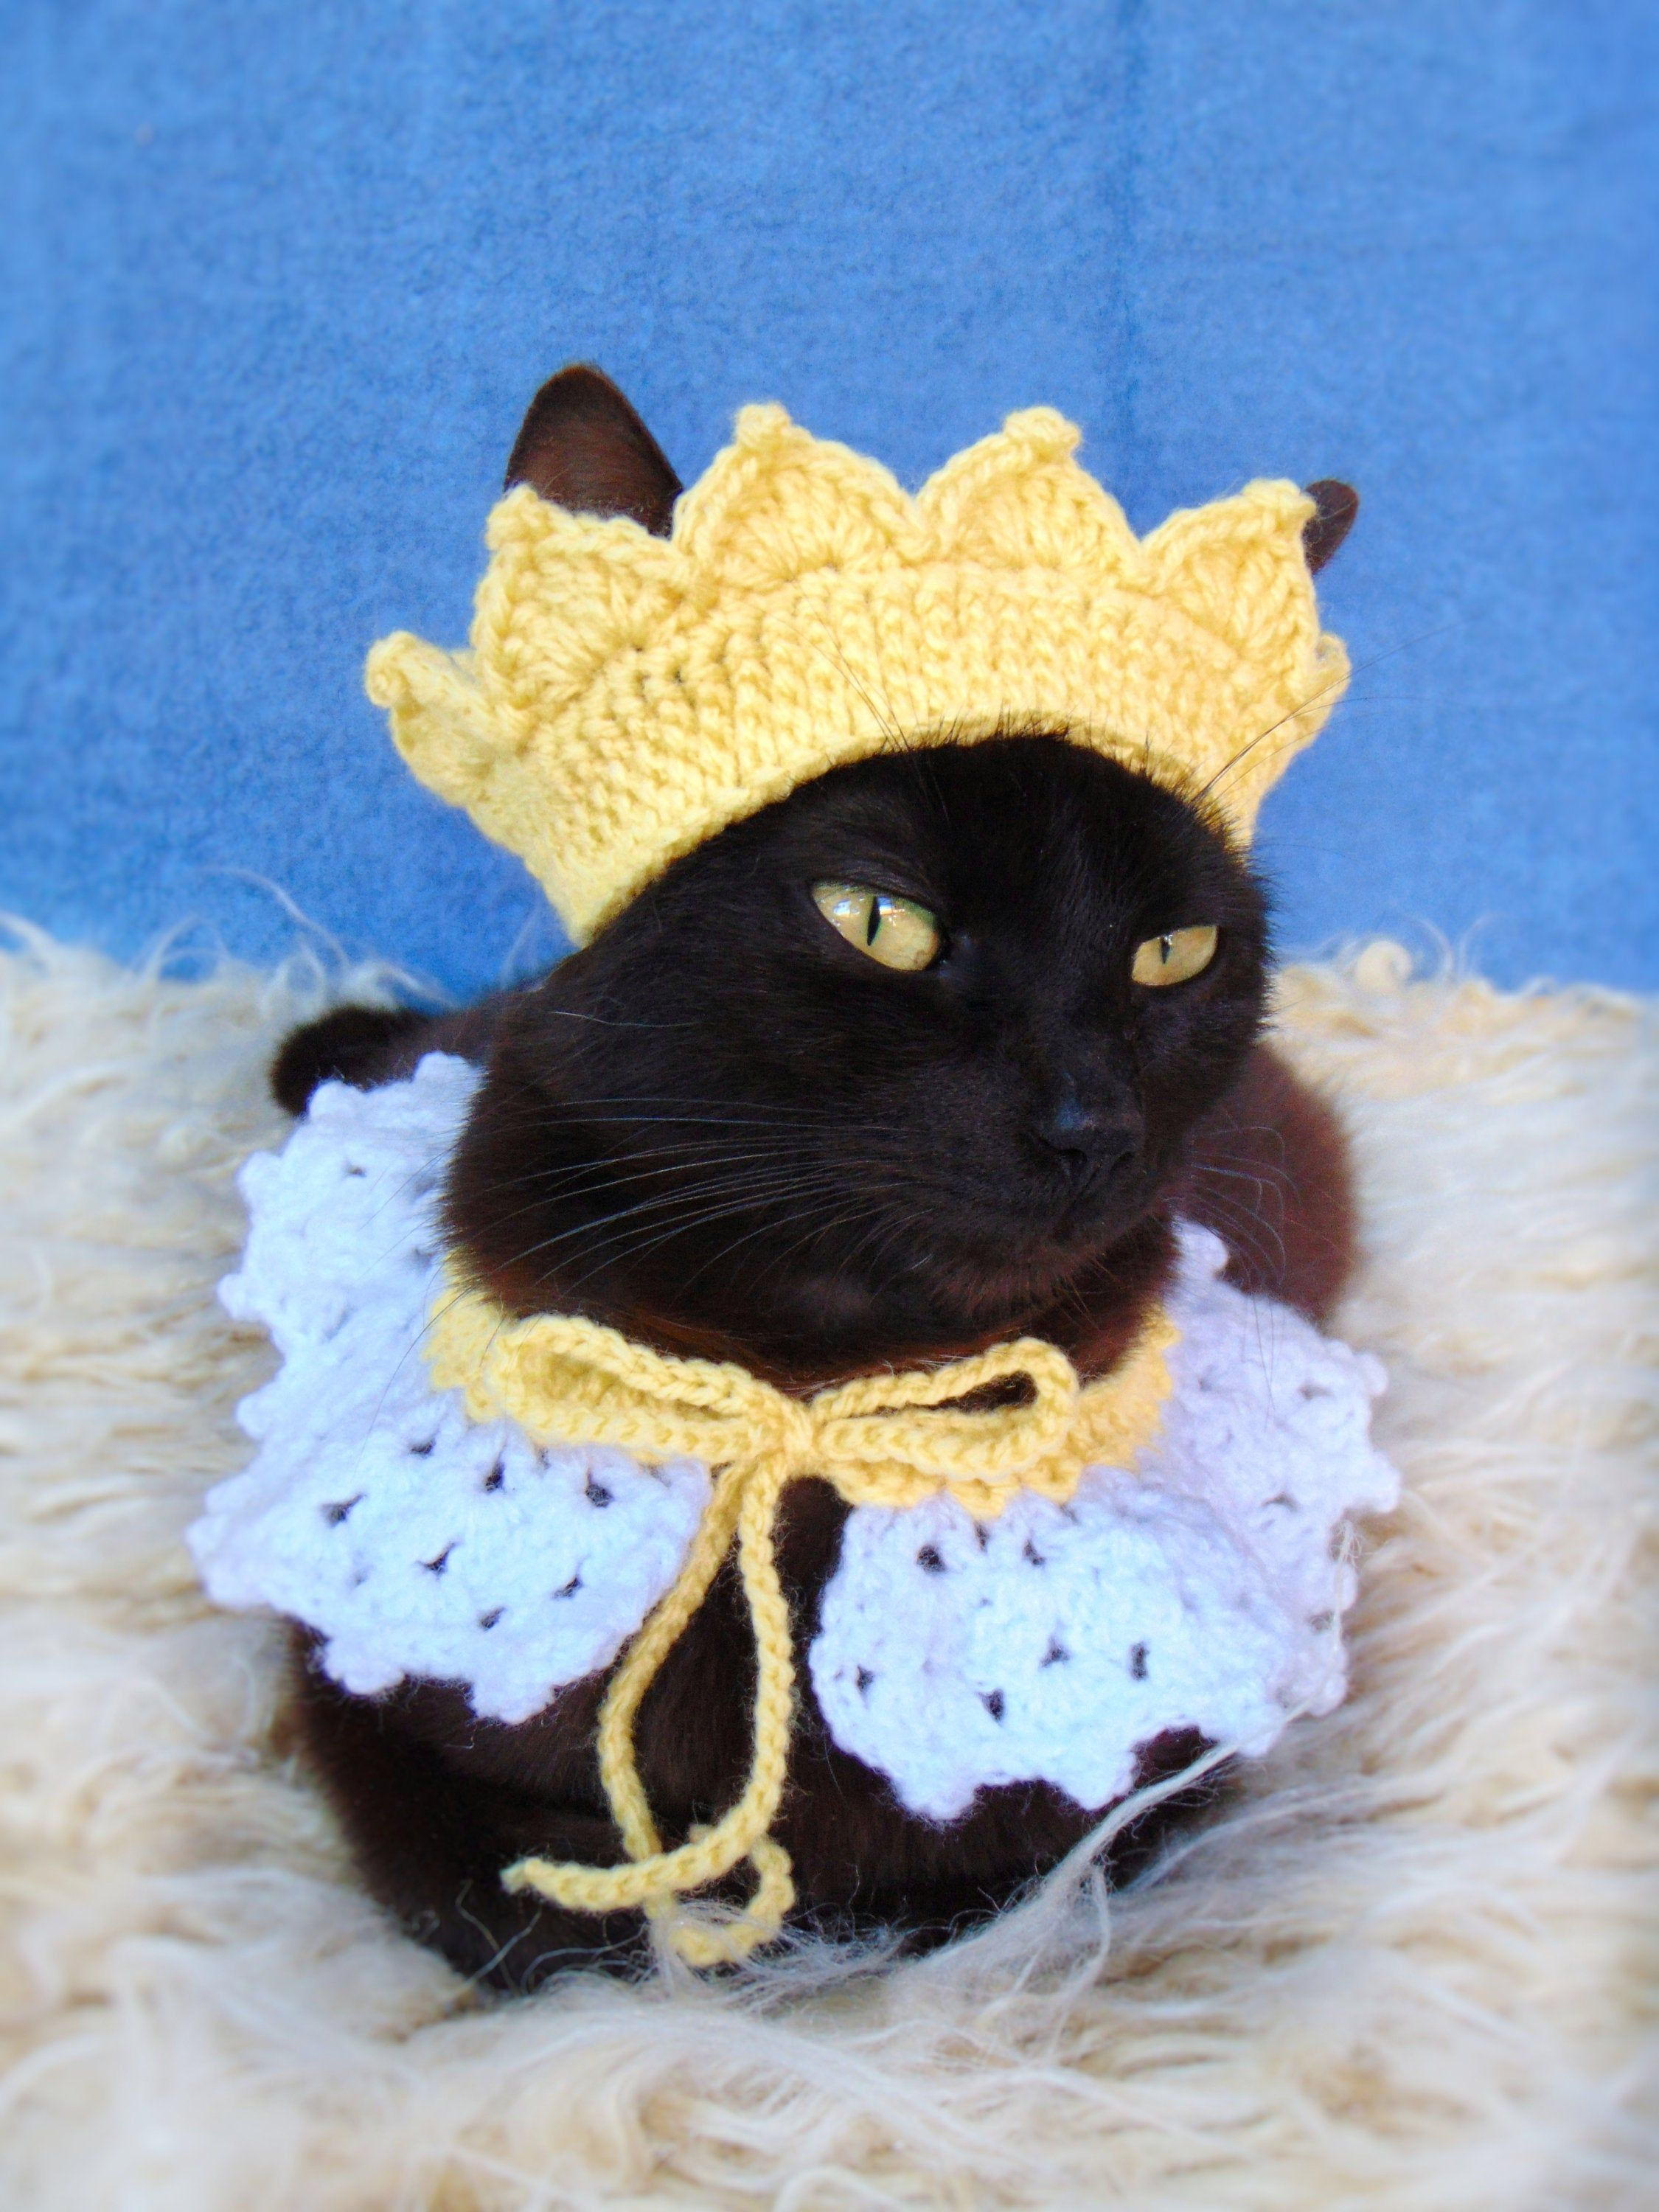 Crown and collar for cat, Princess cat outfit, Headpiece for kitten, kitty collar, Cat accessories, Gift for cat lover